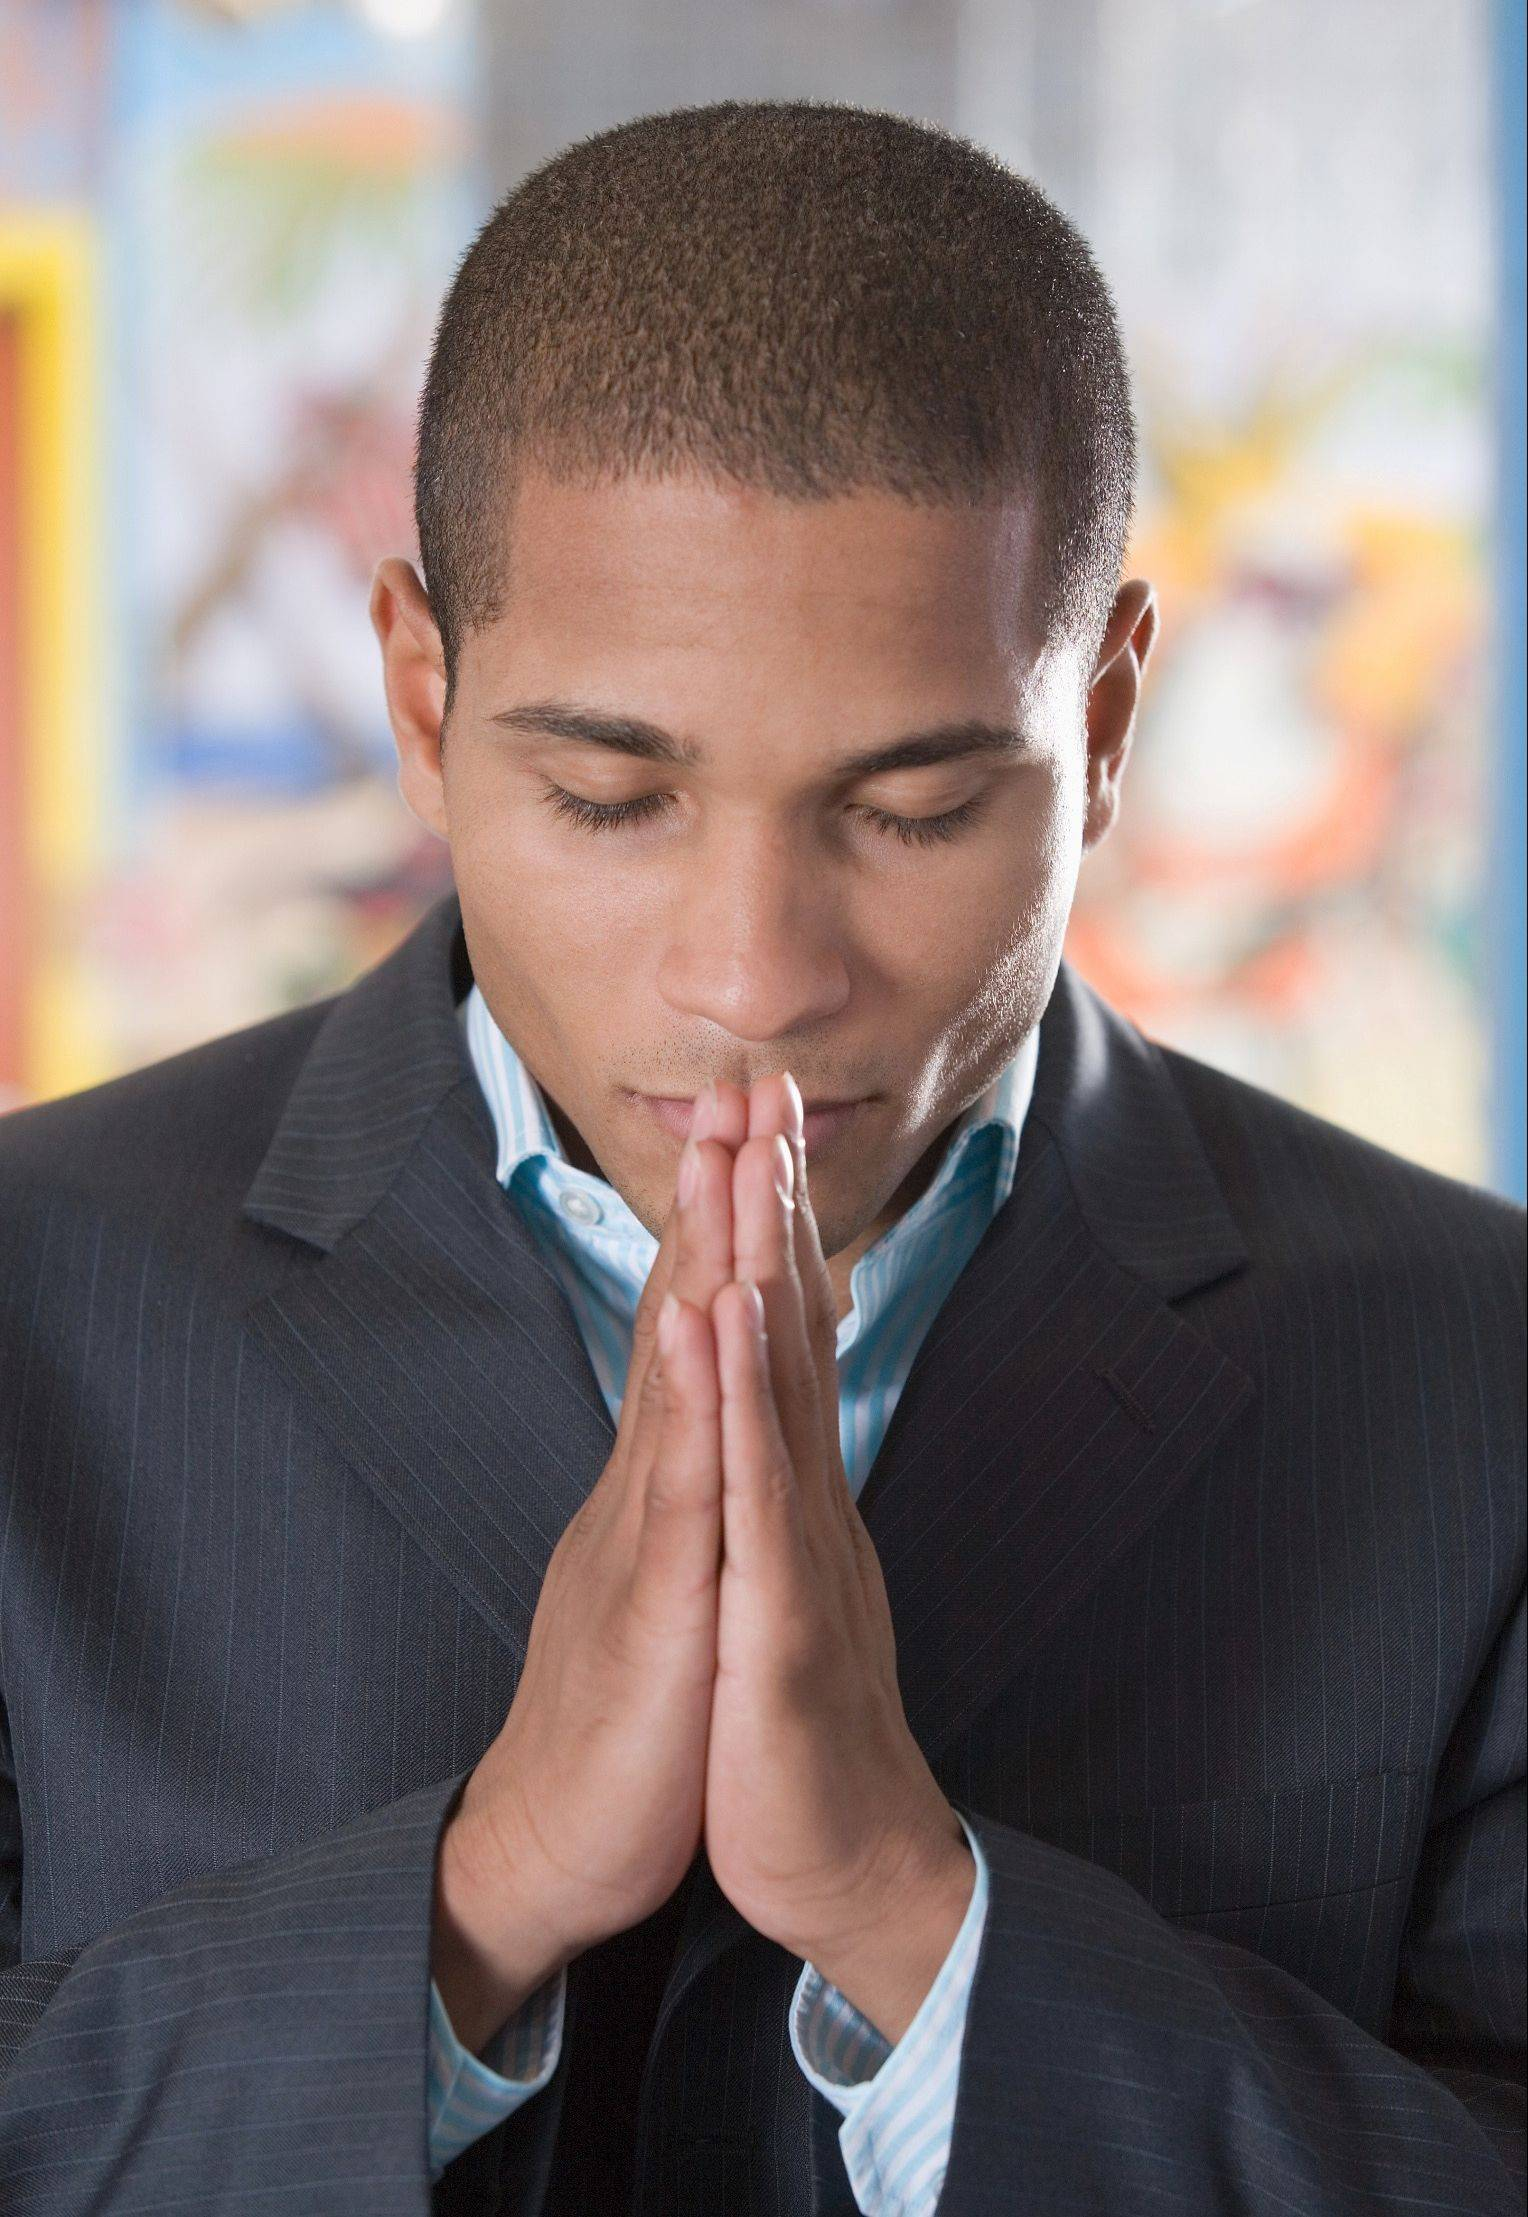 Studies have found that religious beliefs can impact a person's psychological health.